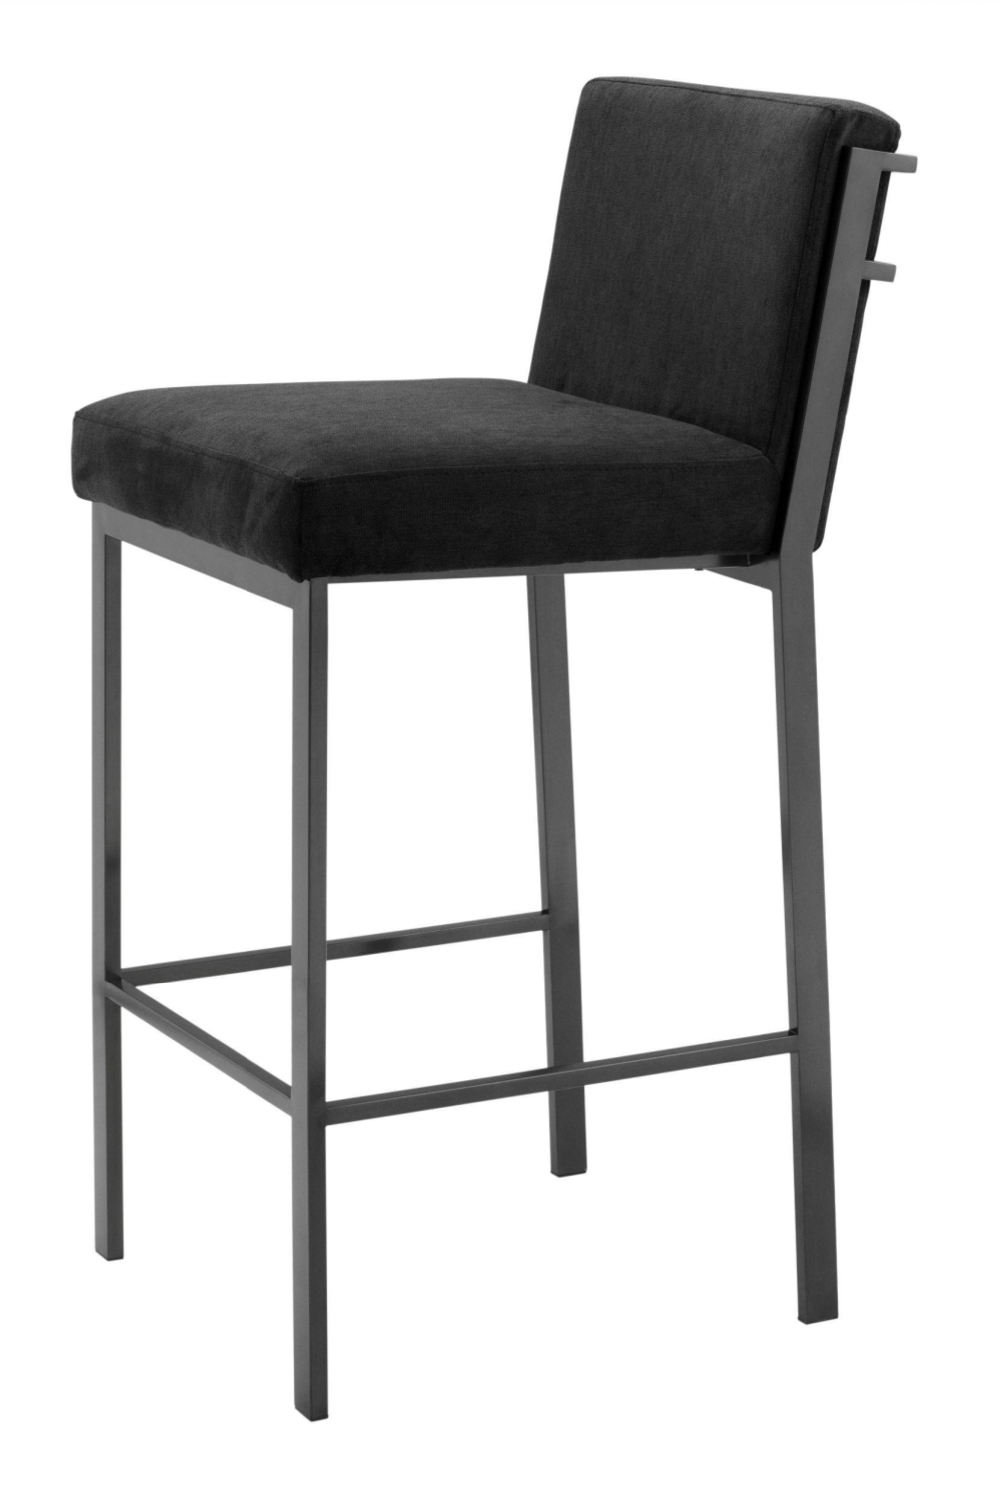 Bronze Black Velvet Bar Stool | Eichholtz Scott